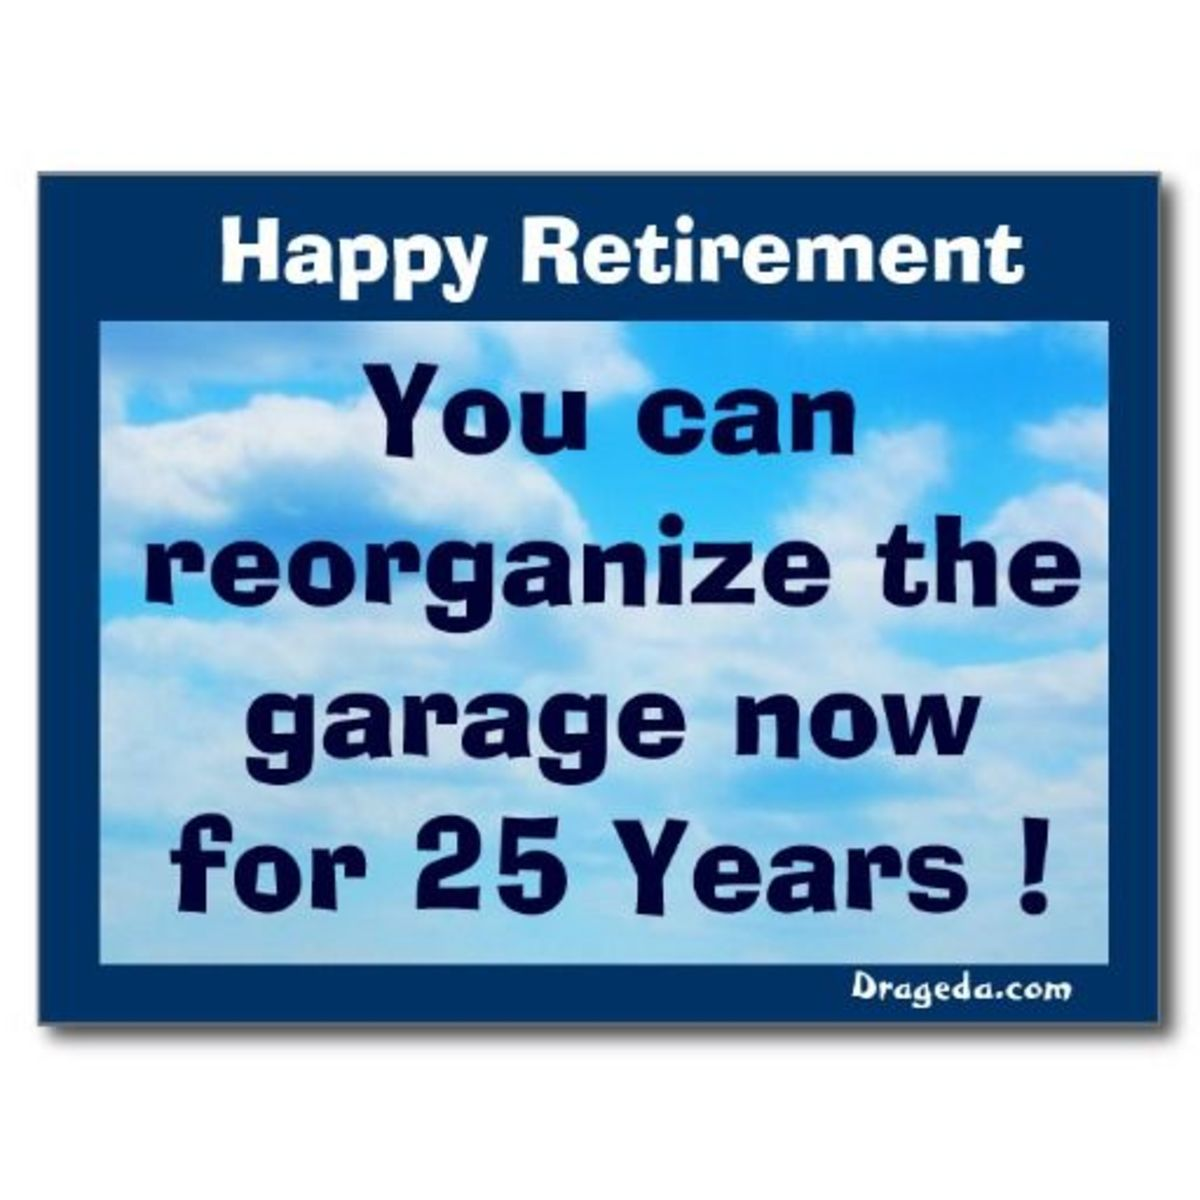 Happy Retirement, You can reorganize the garage now for 25 years!